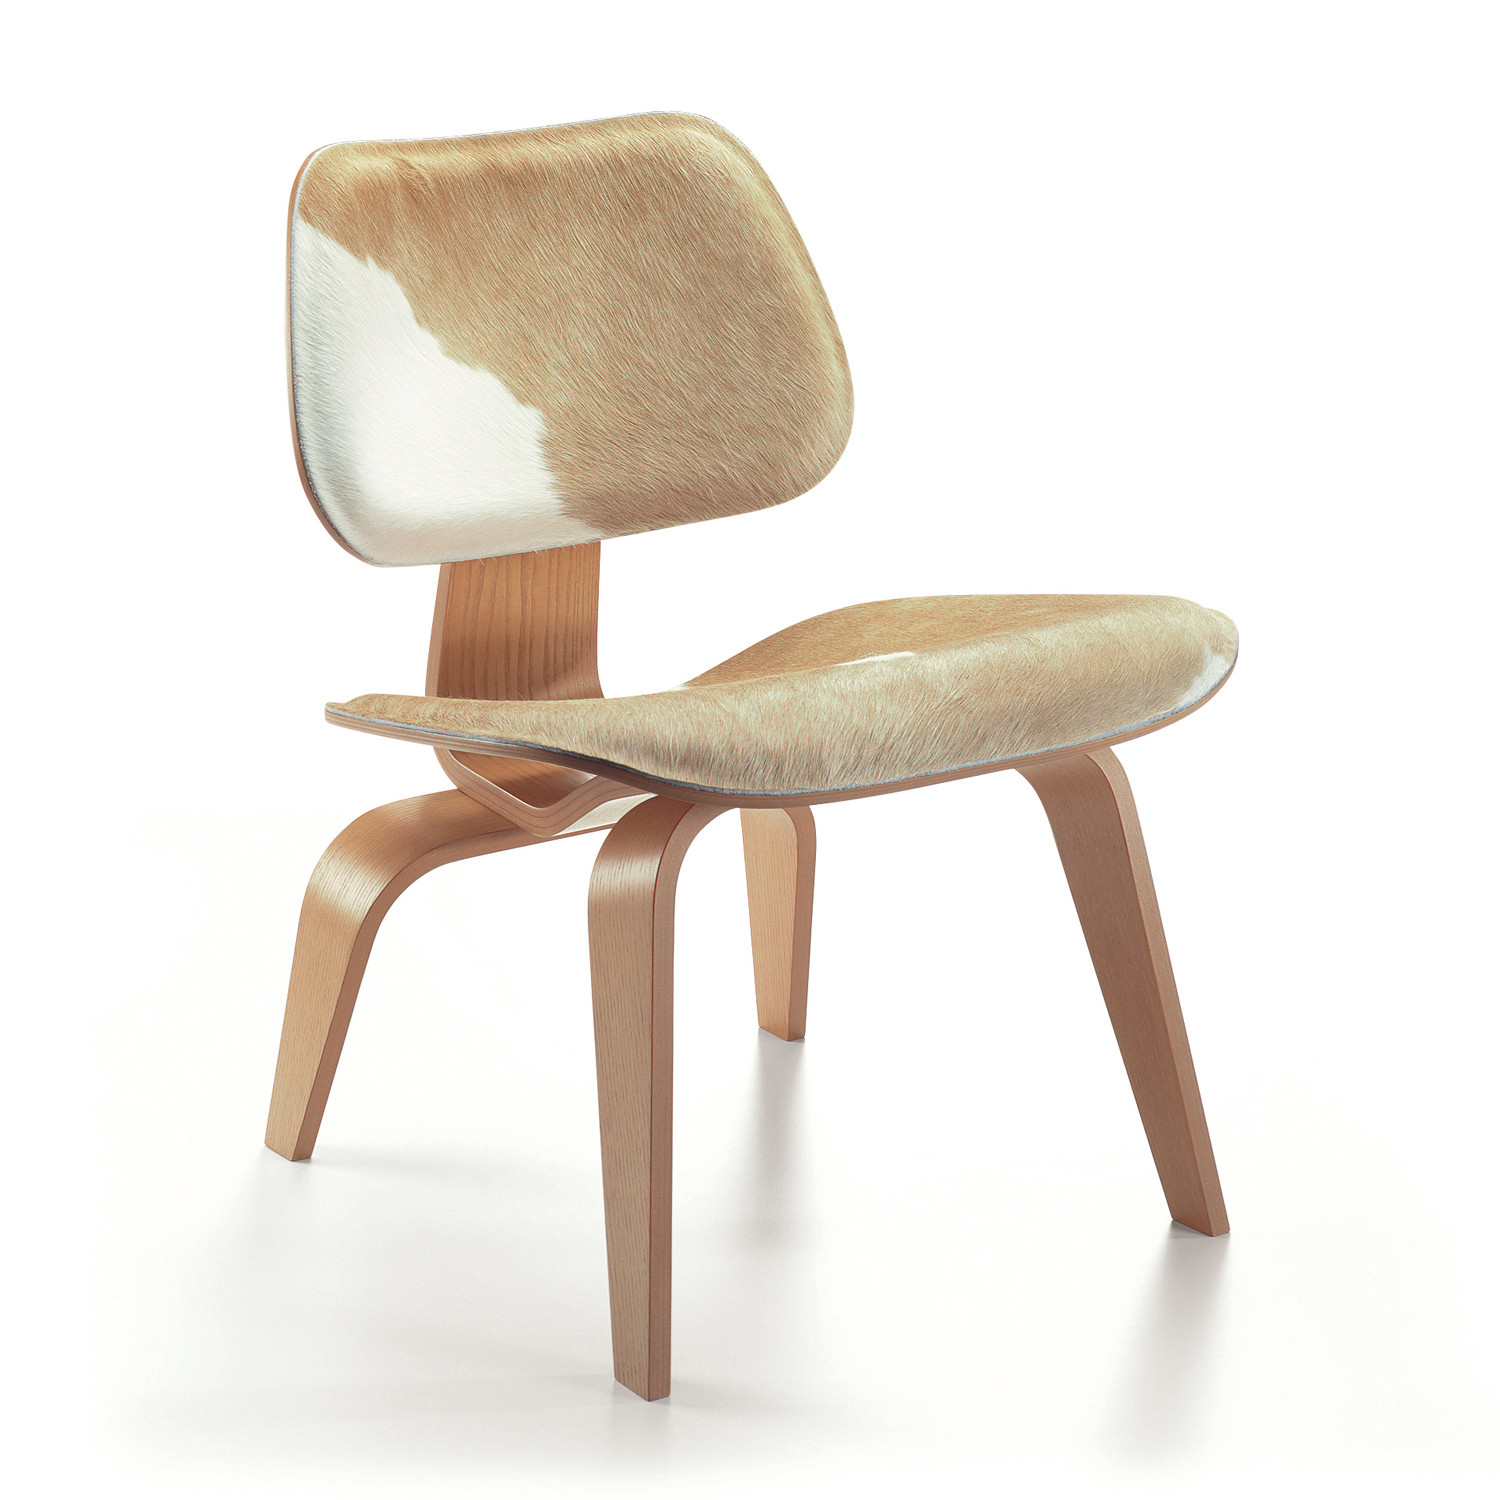 VItra LCW Plywood Group Chair